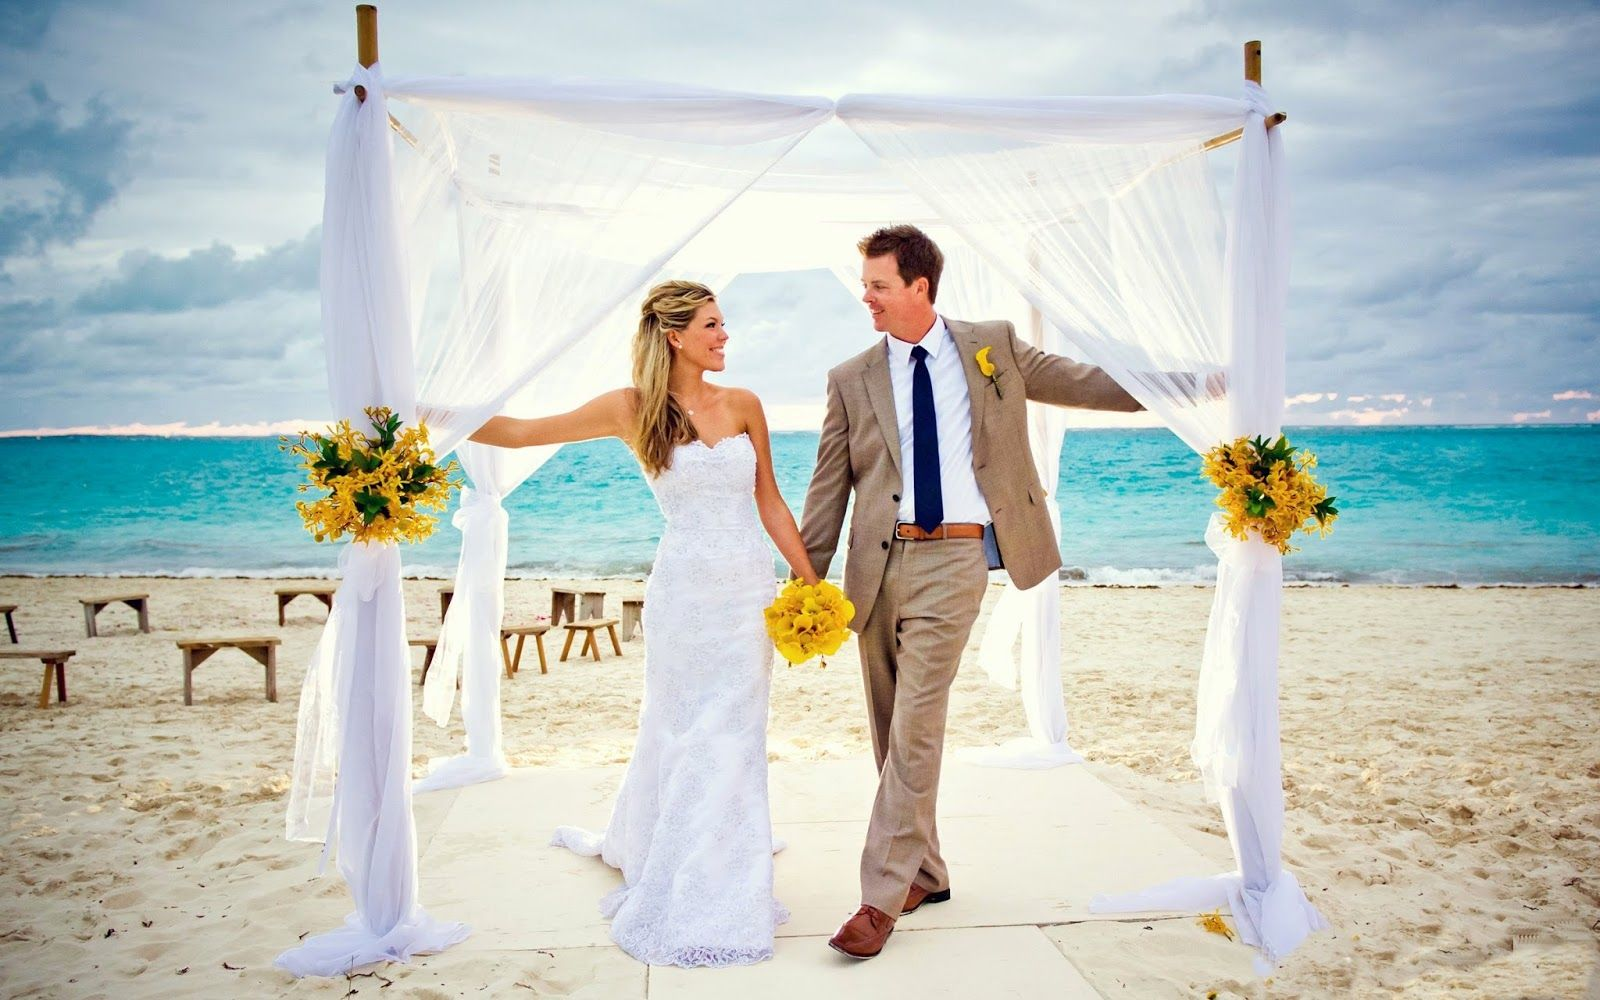 Click here to download in HD Format >>       Funadress Beach Wedding 2    http://www.superwallpapers.in/wallpaper/funadress-beach-wedding-2.html